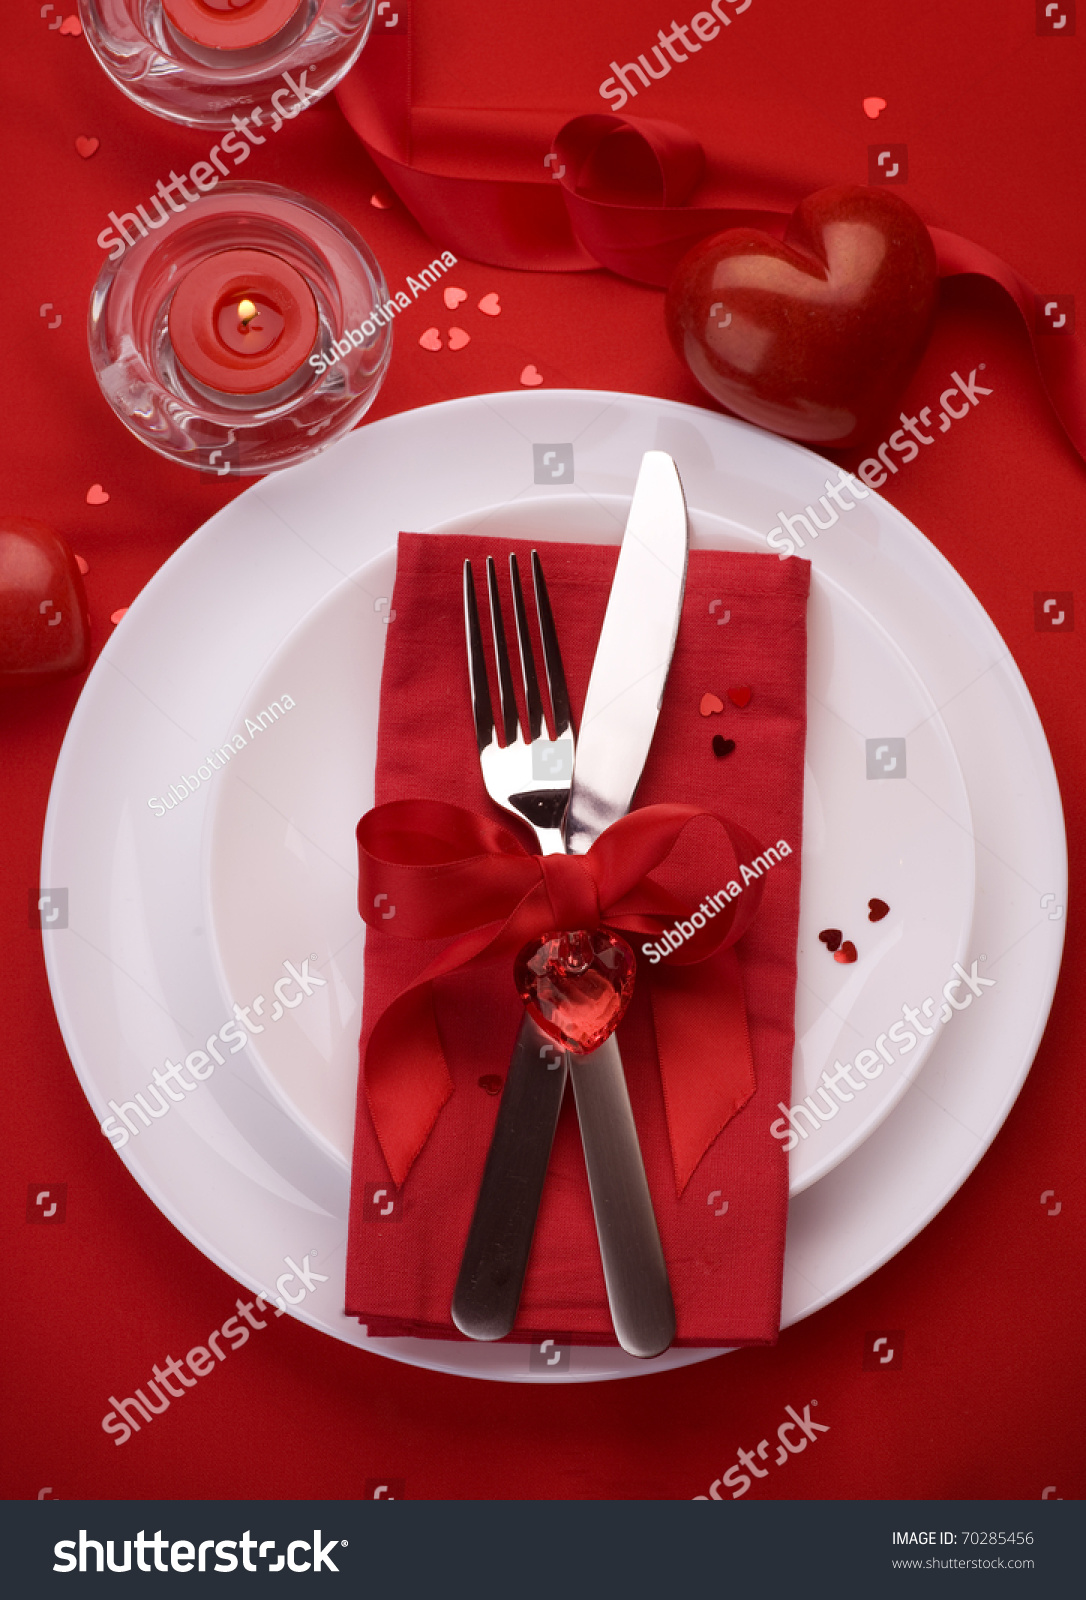 Romantic dinner table decoration - Romantic Dinner Table Place Setting For Valentine S Day